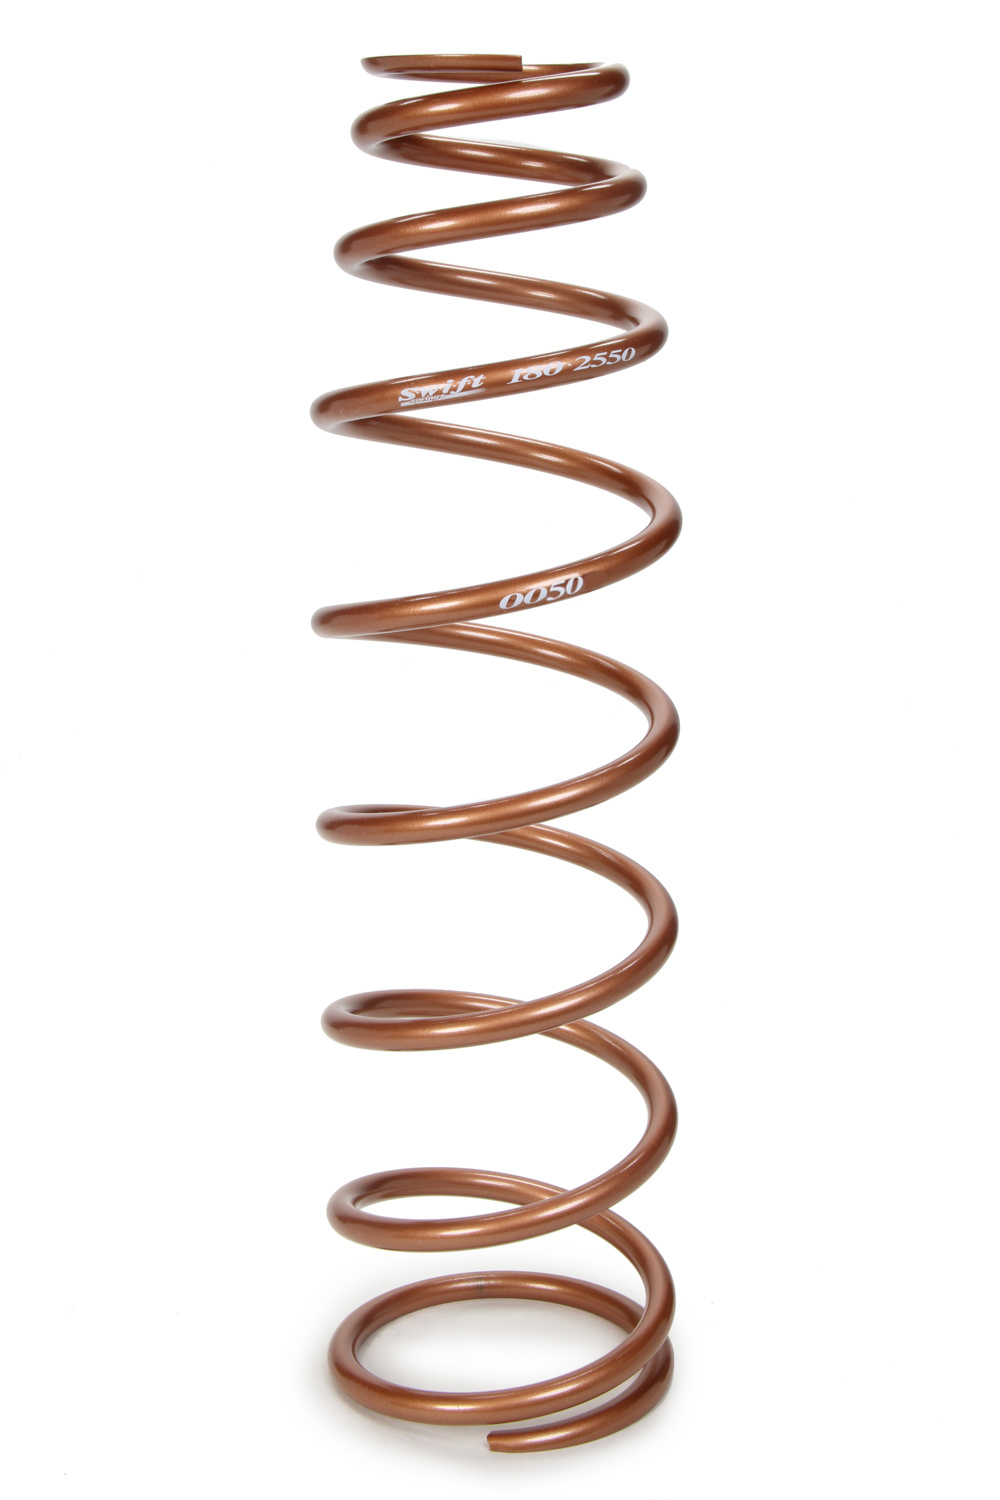 Swift Springs 180-2550-050 BP Coilover Spring 18in x 5in x 50lb 2.5in ID